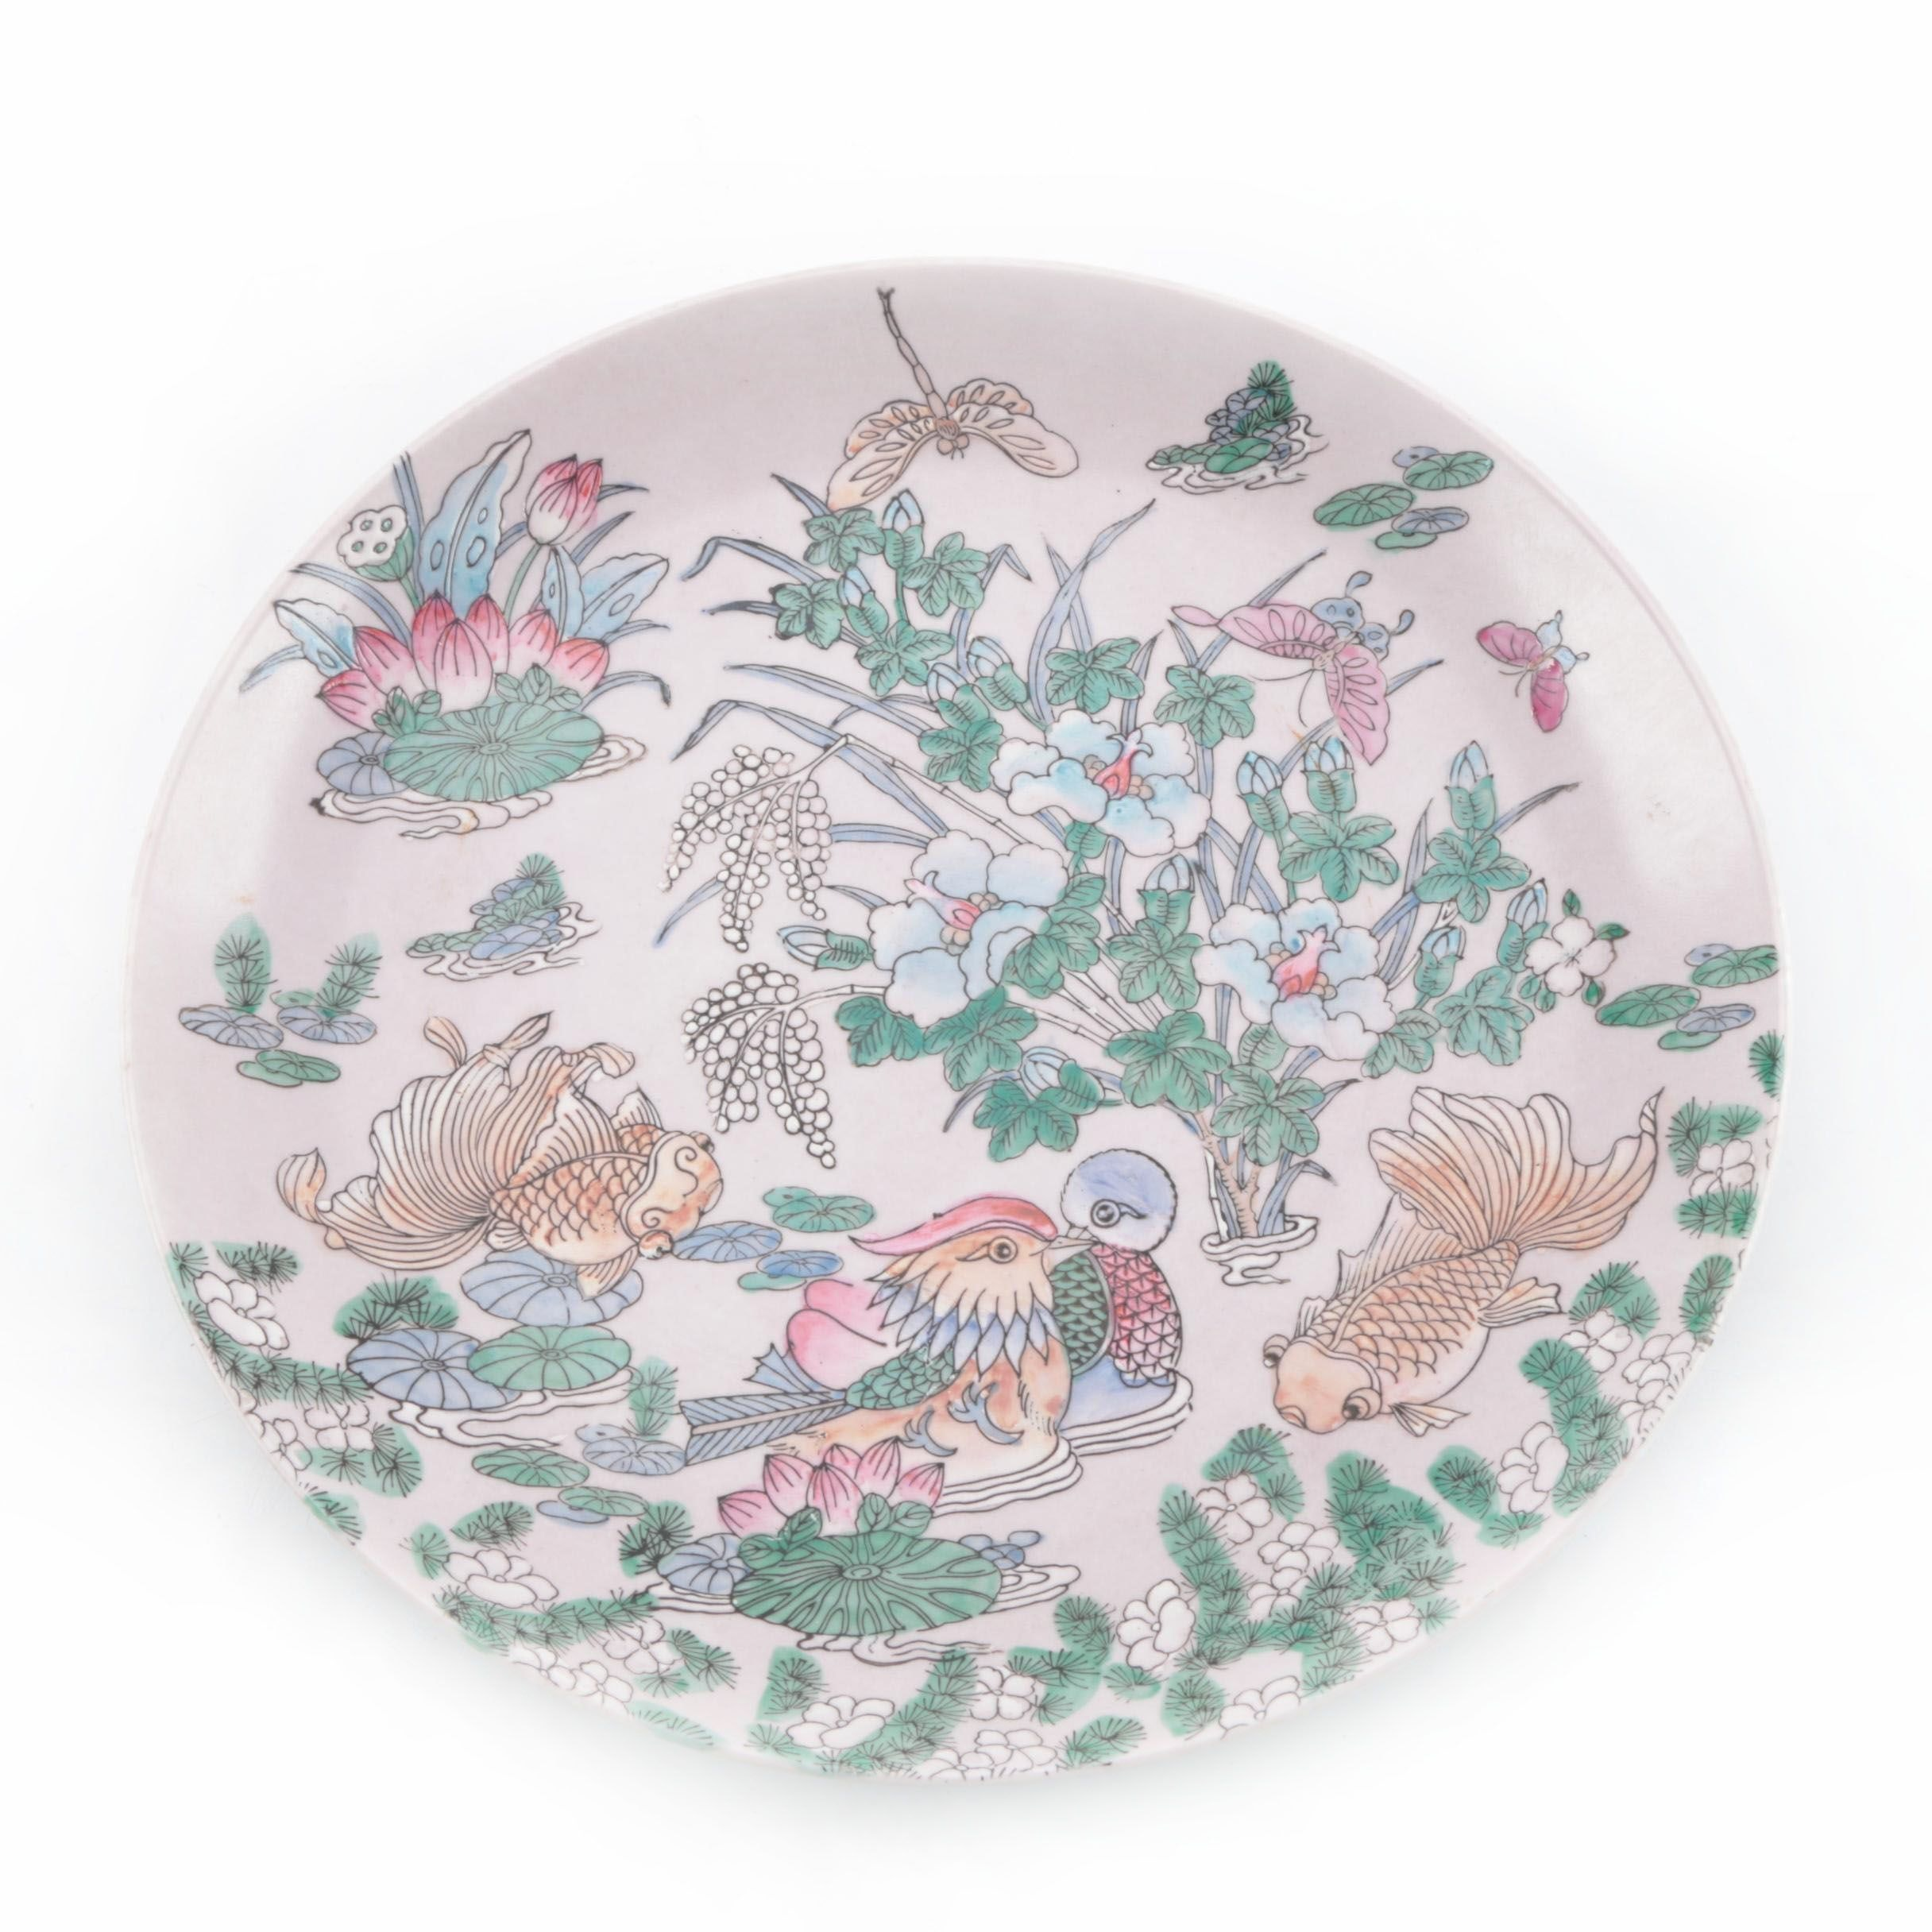 Chinese Plate with Animals and Flowers